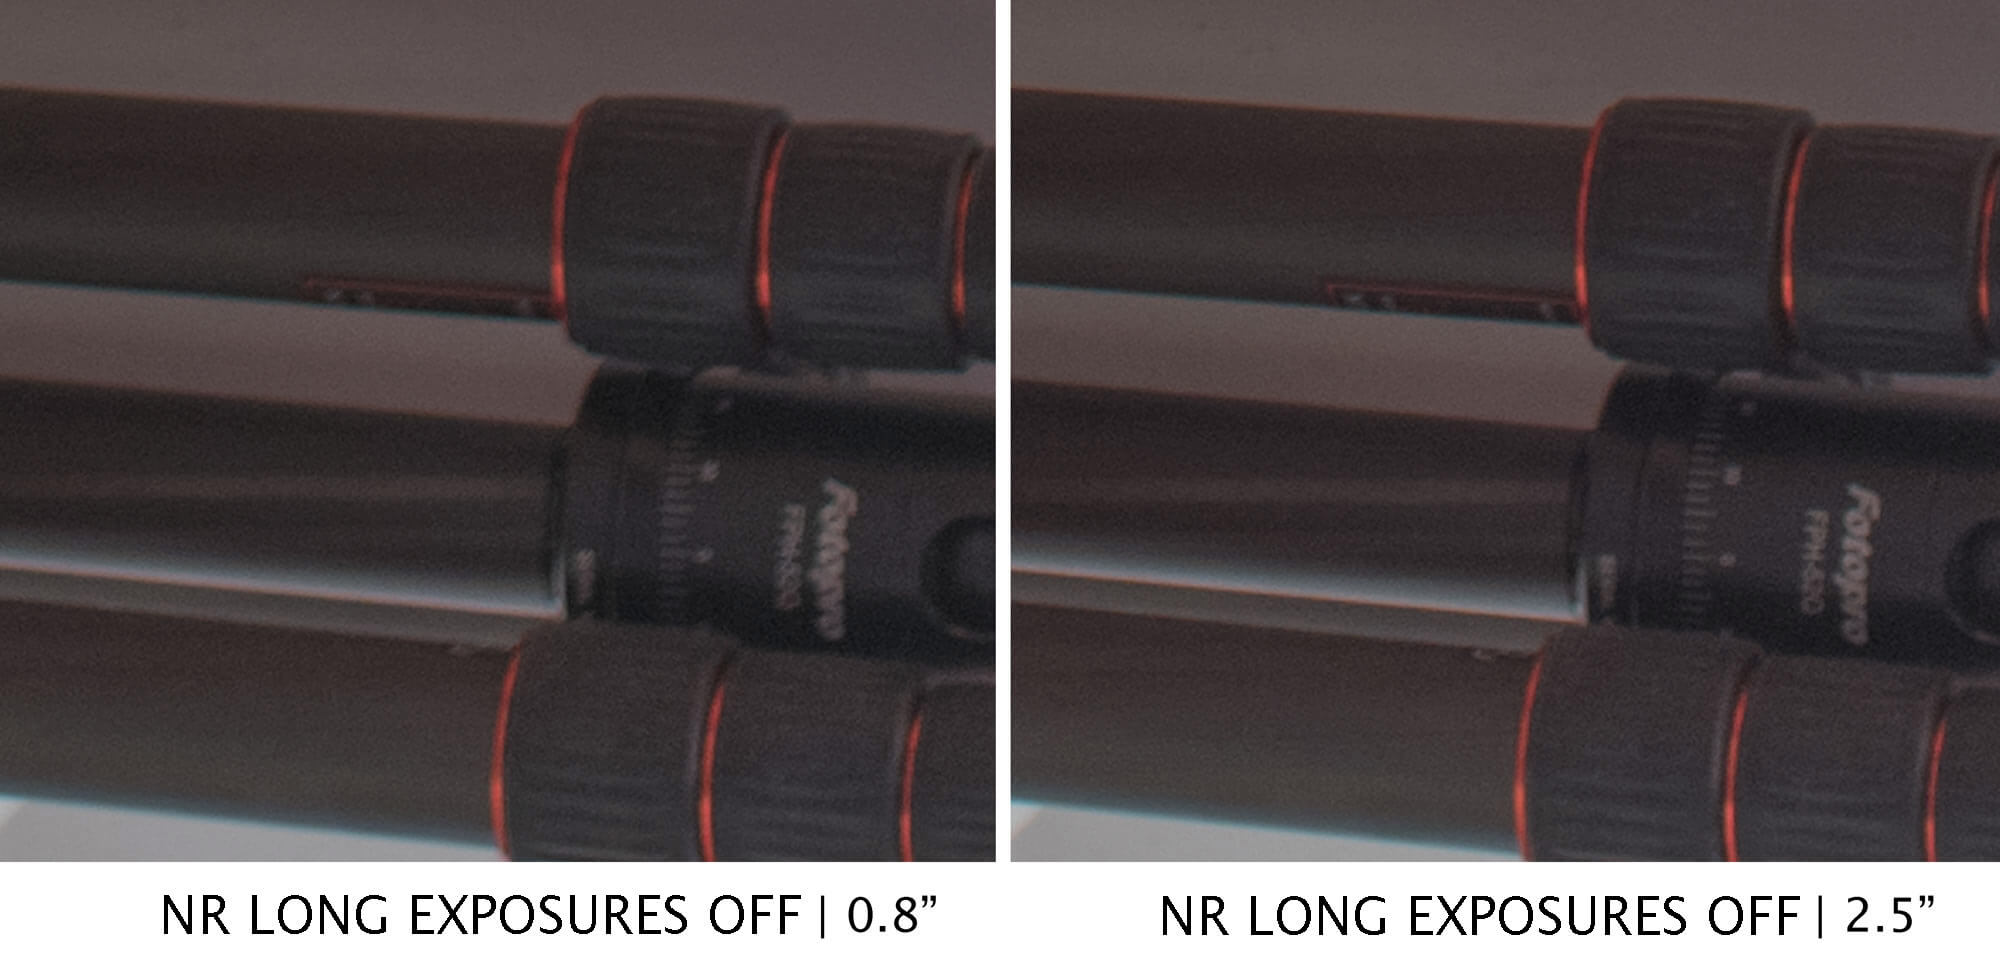 The new Nikon D850 has a problem with noise reduction on